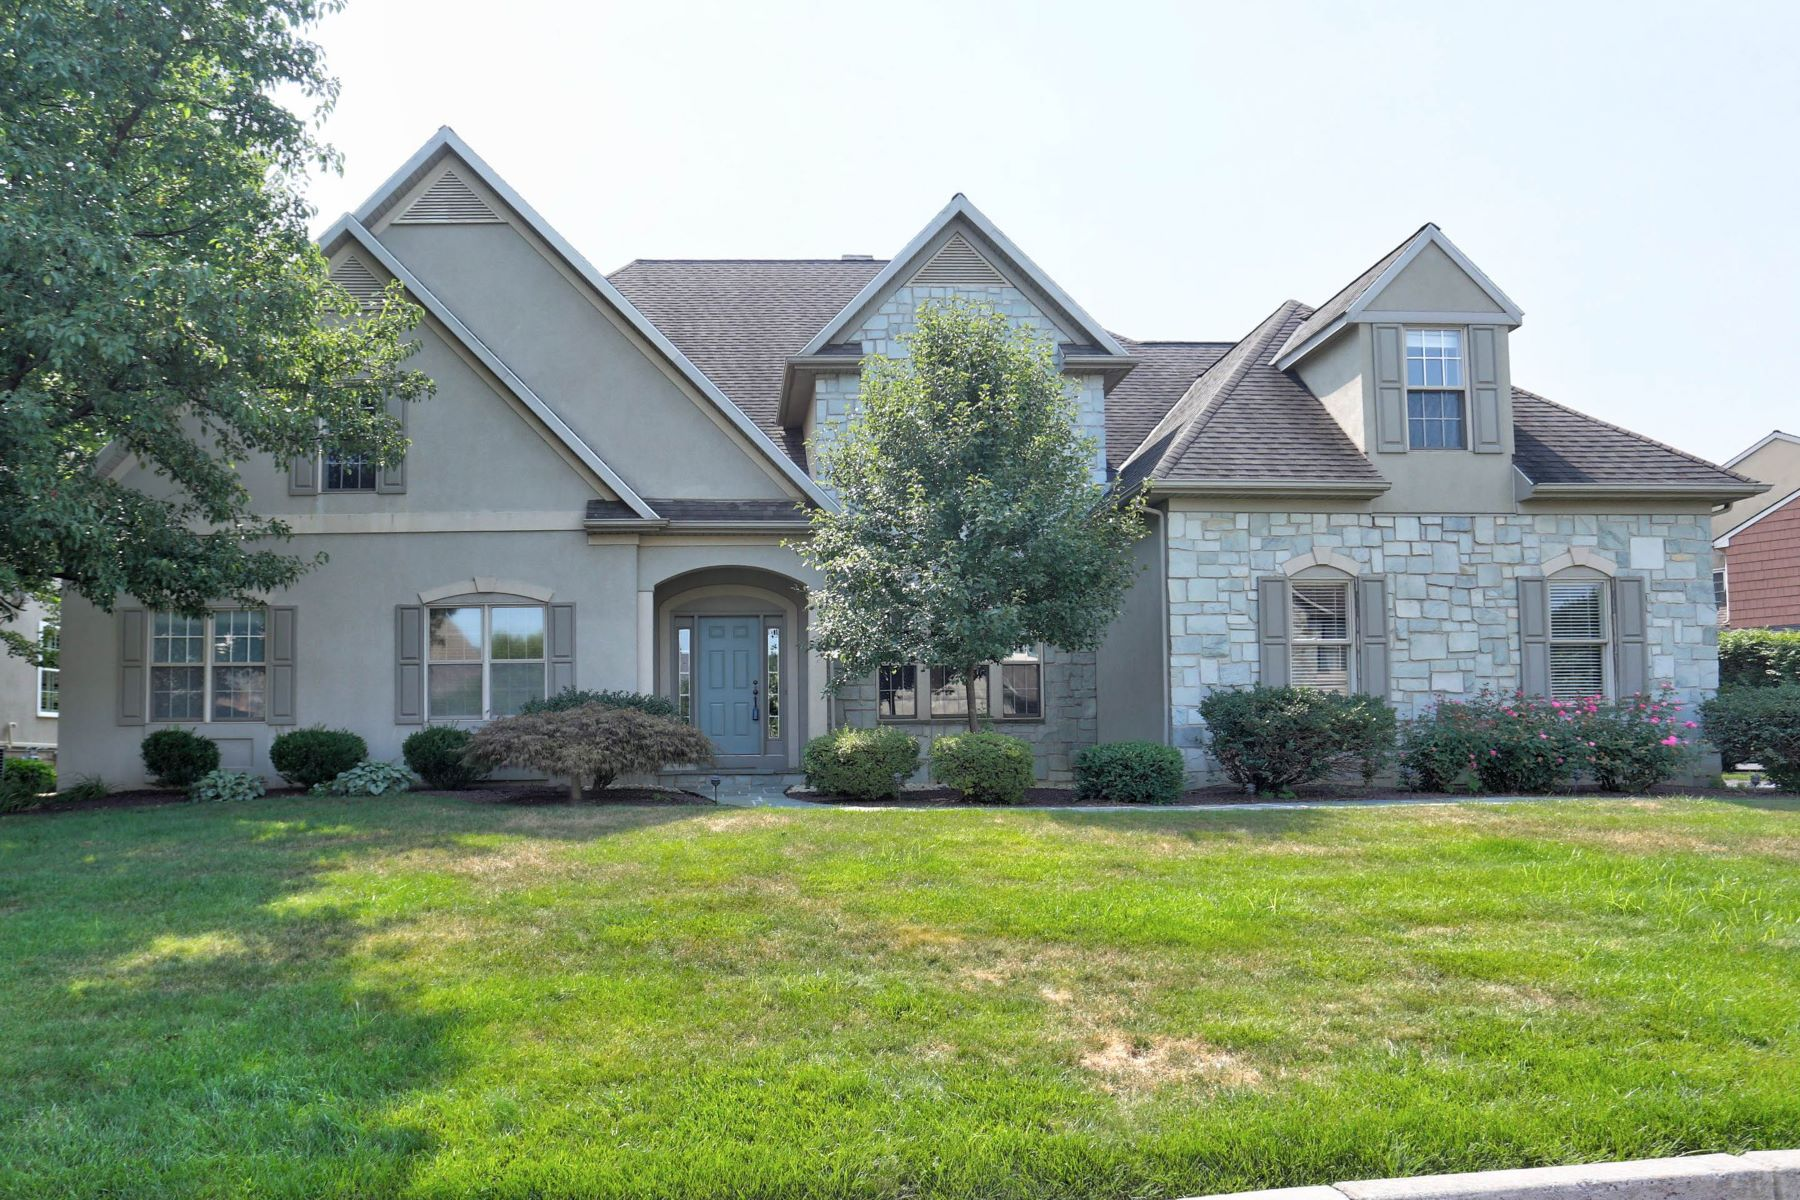 Single Family Home for Sale at 805 Woodfield Drive Lititz, Pennsylvania 17543 United States